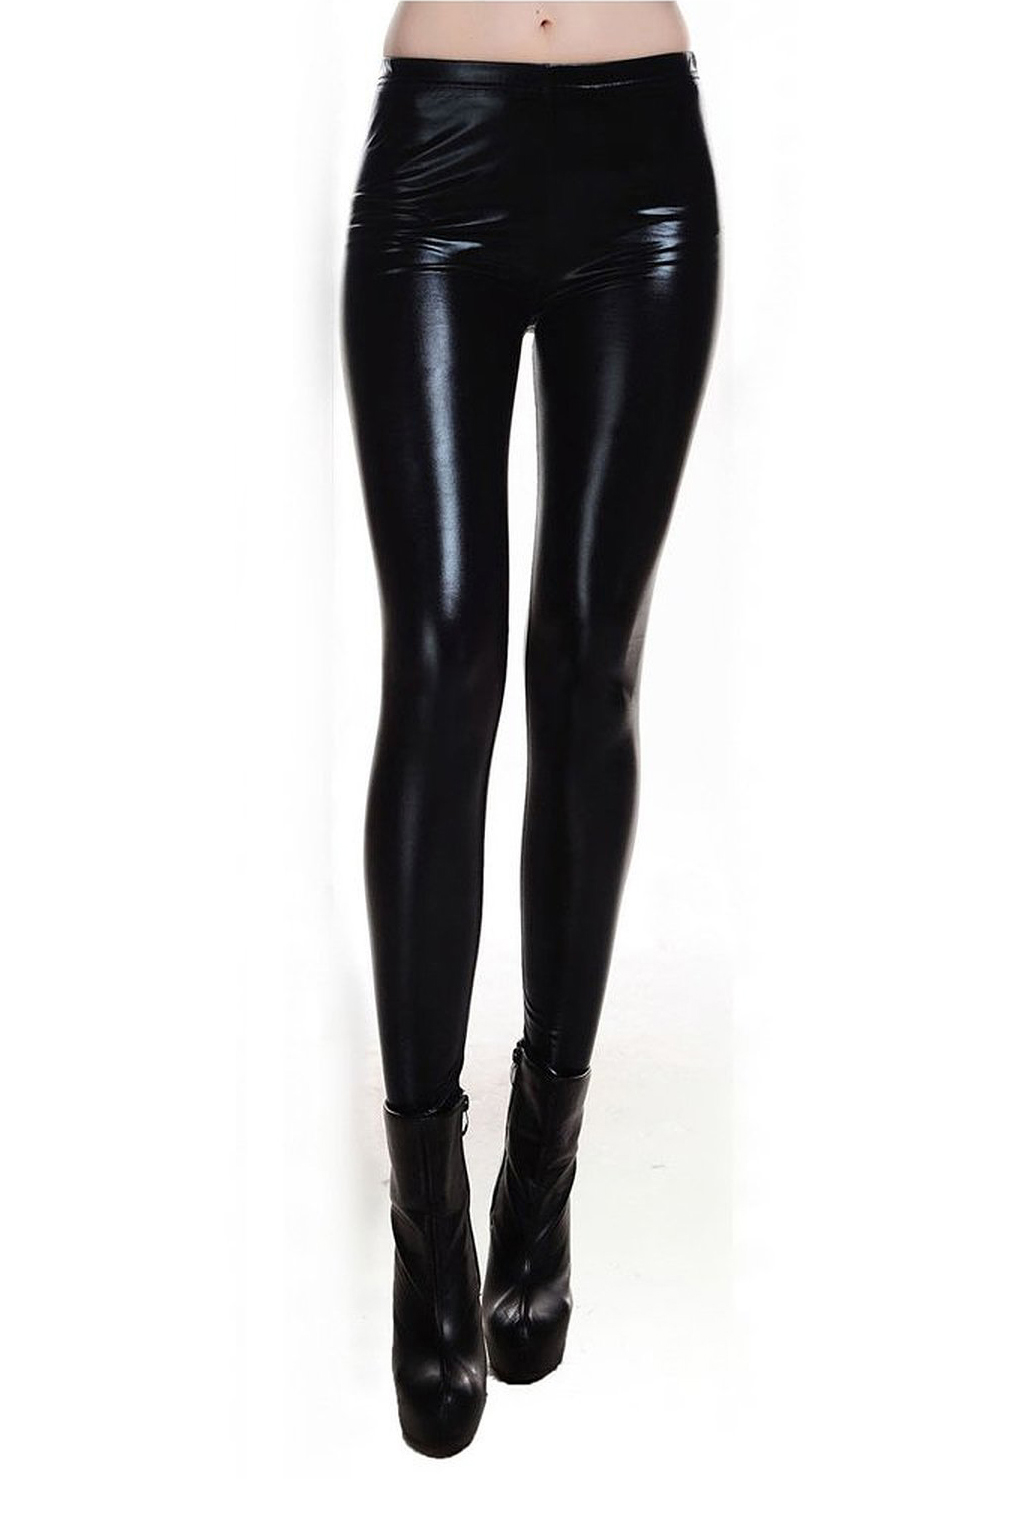 Compare Prices on Black Metallic Pants- Online Shopping/Buy Low ...